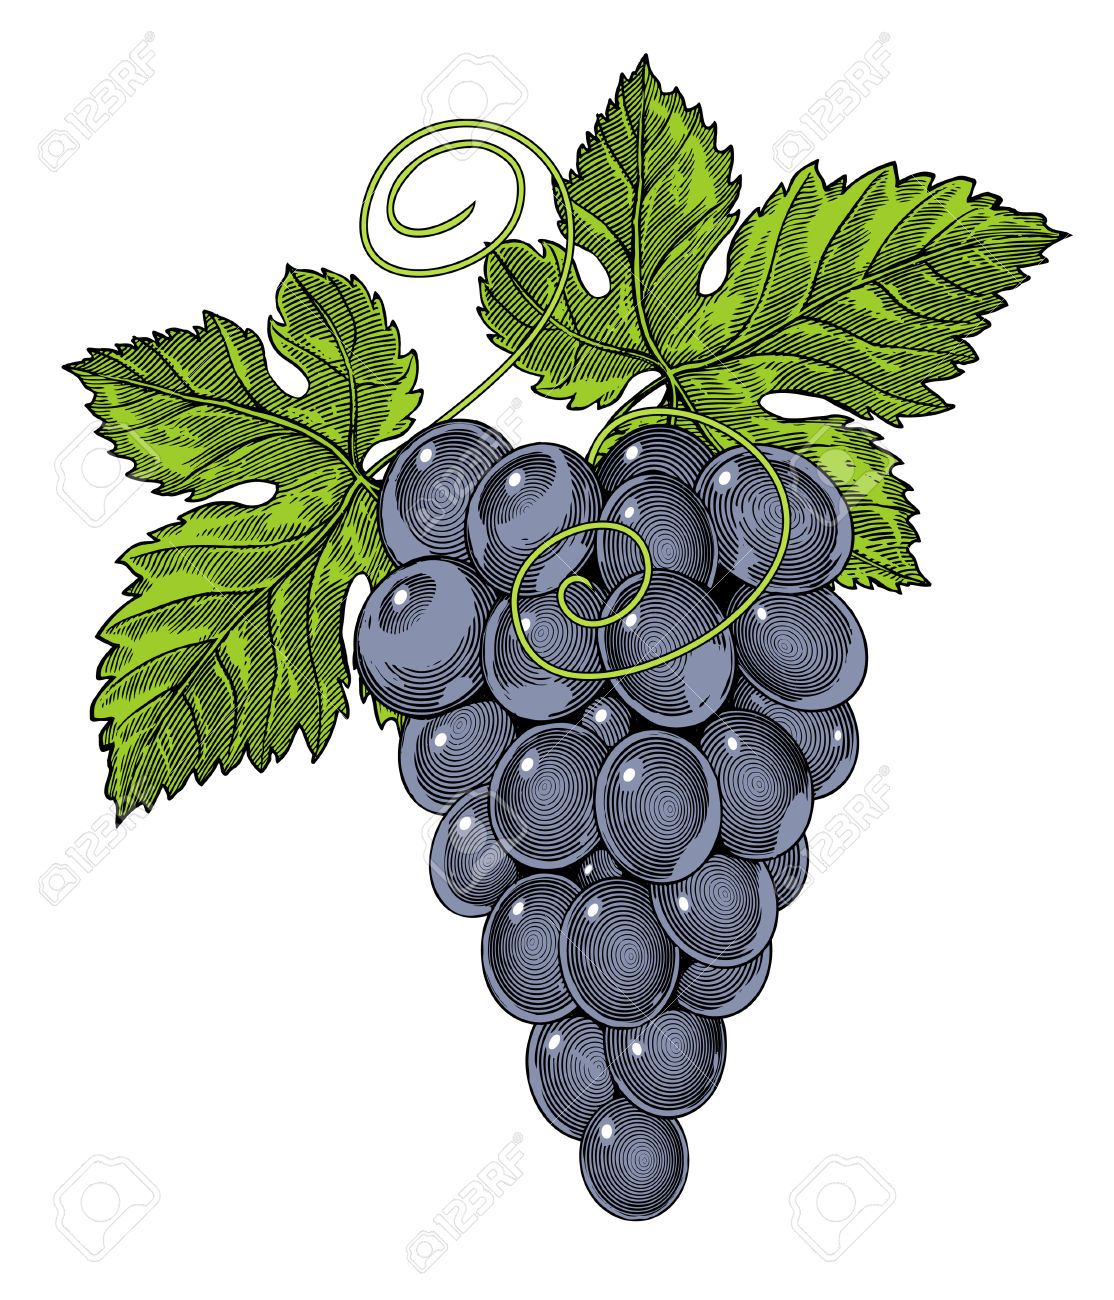 26585108-illustration-of-bunch-of-grapes-in-vintage-engraved-style-Stock-Vector.jpg (1114×1300)